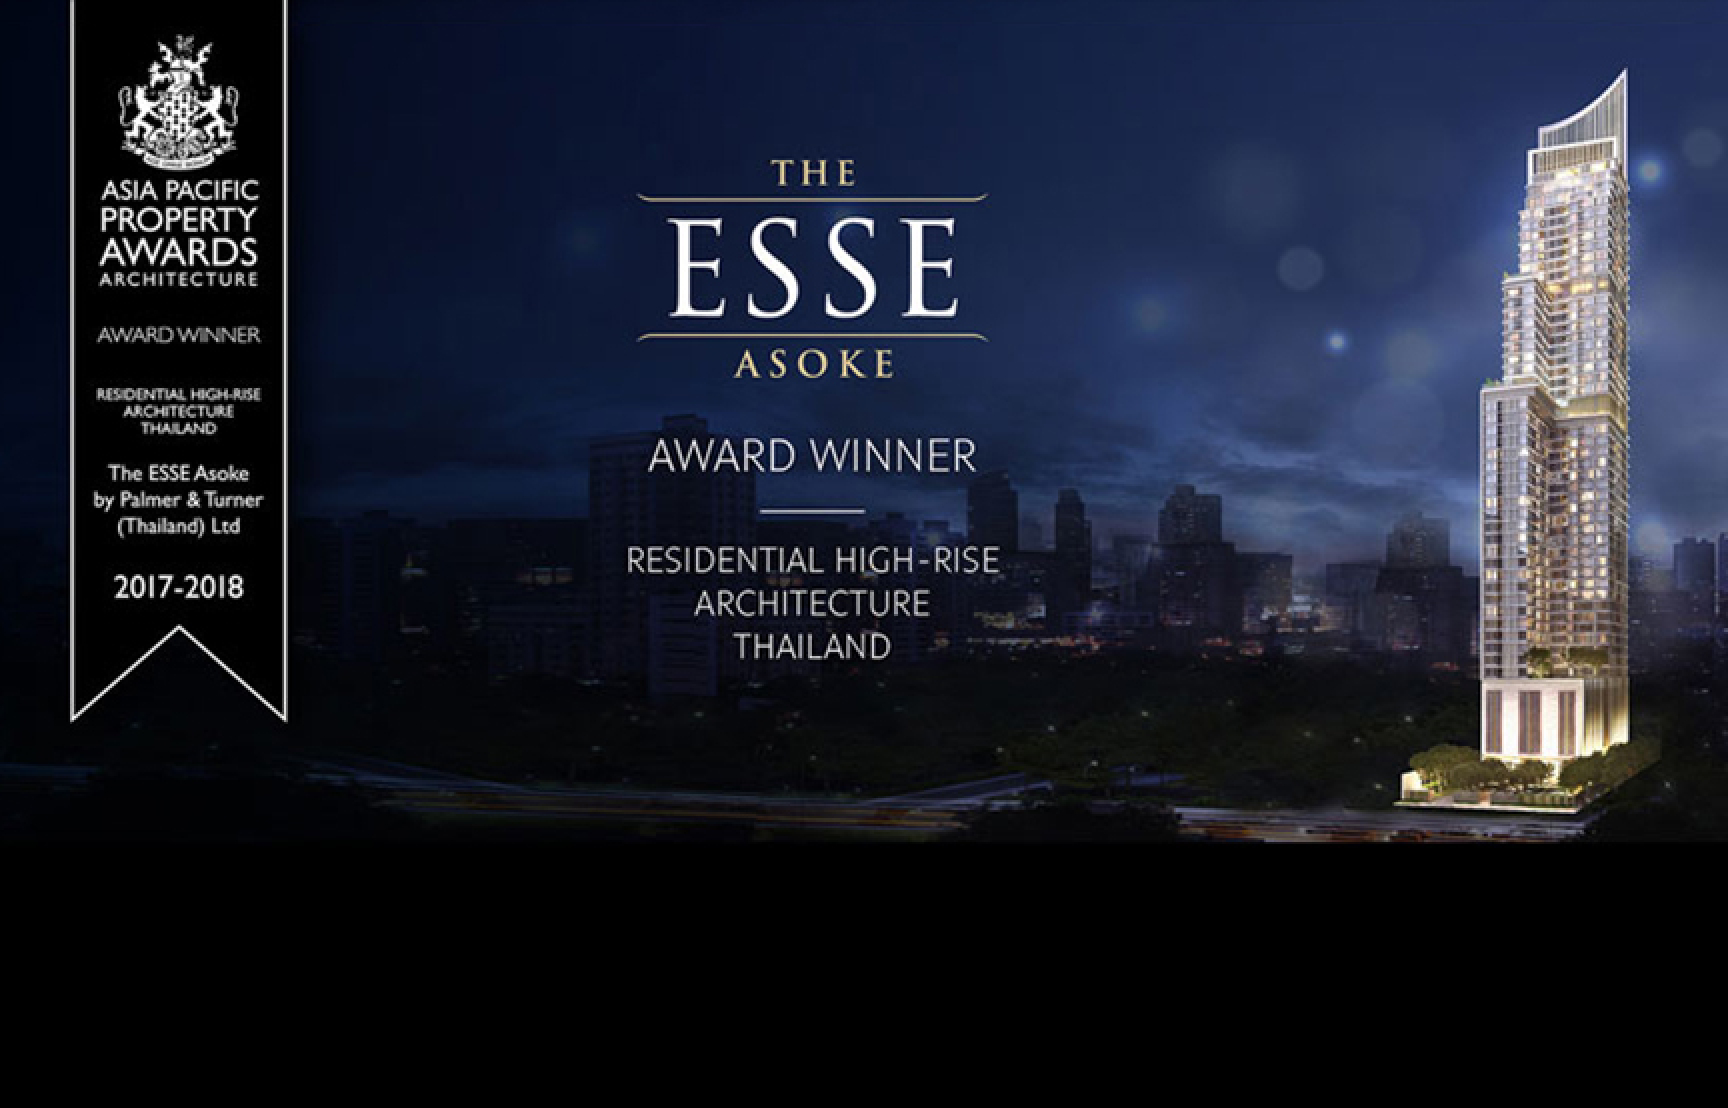 THE ESSE ASOKE WINS ASIA PACIFIC PROPERTY AWARDS